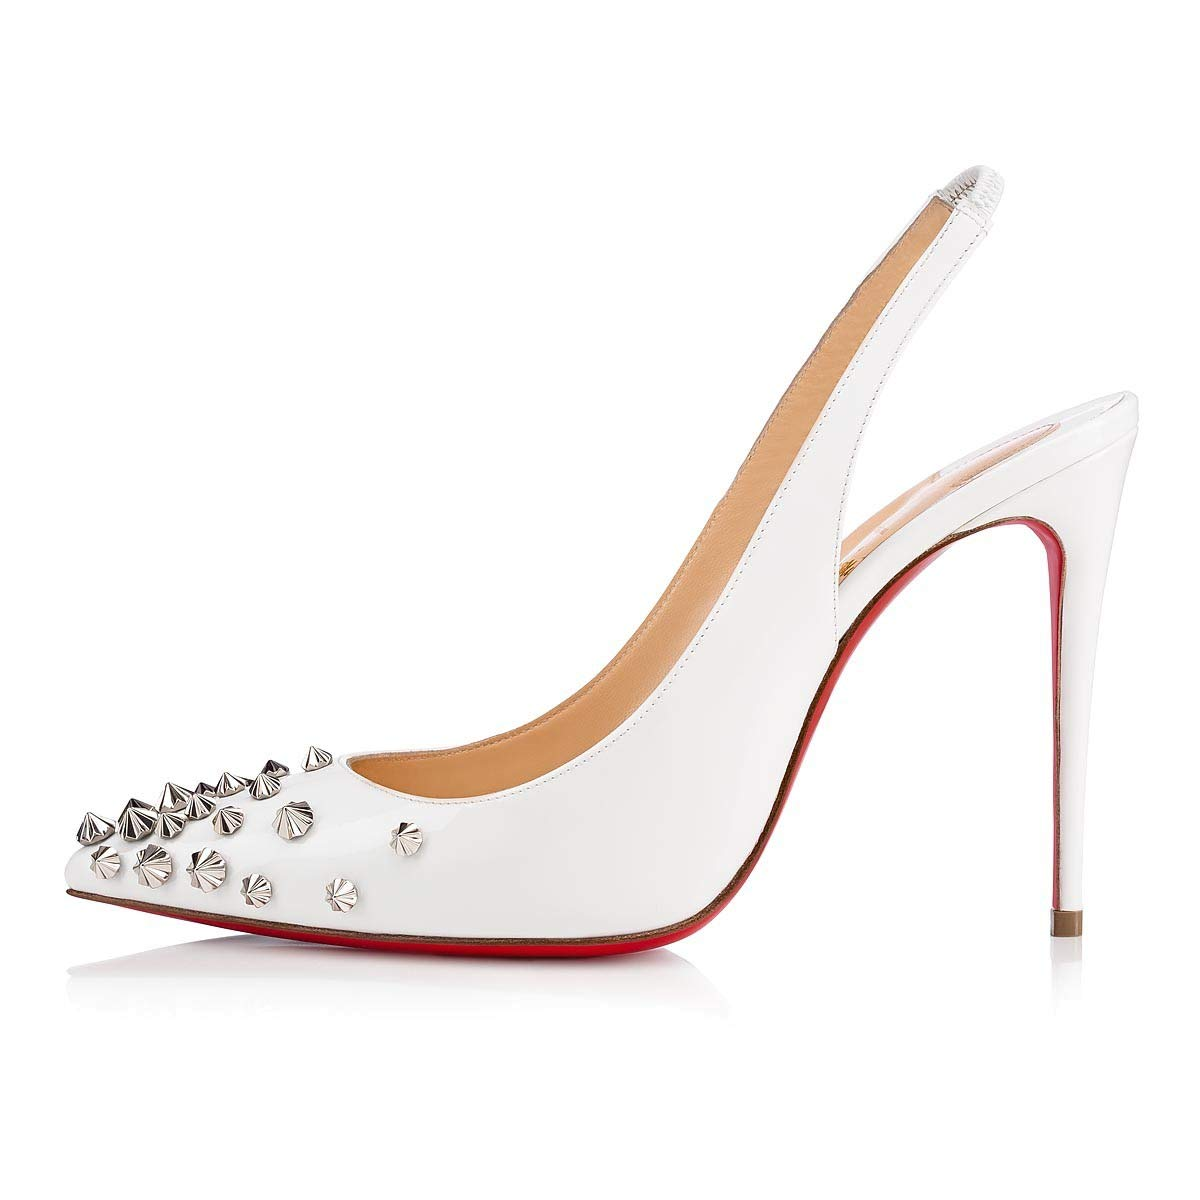 Christian Louboutin White Studded Drama Sling Pumps 100MM Leather 01